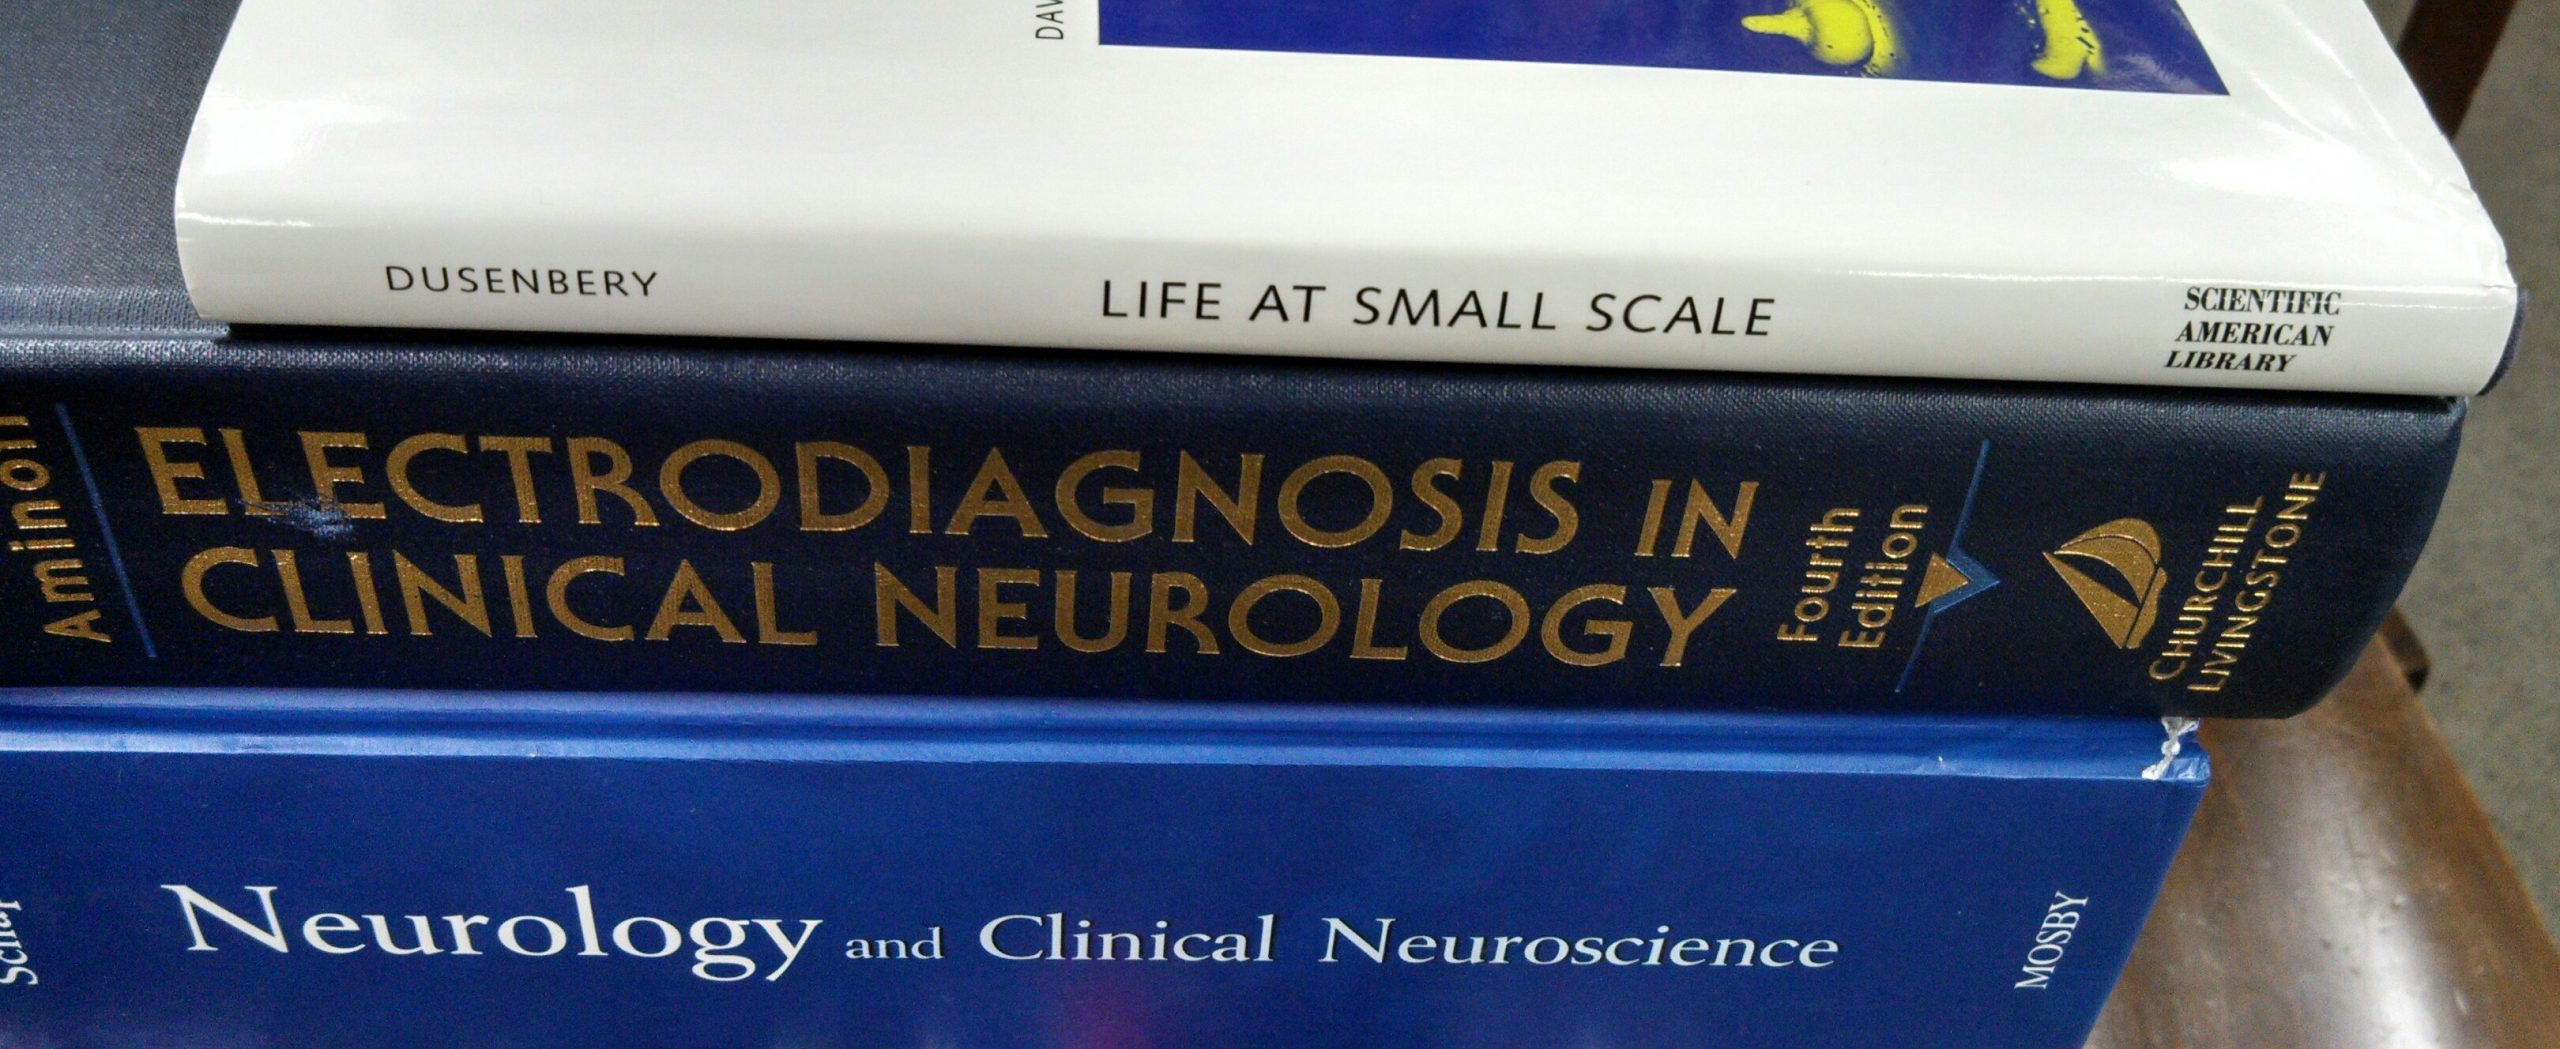 A stack of Biology books